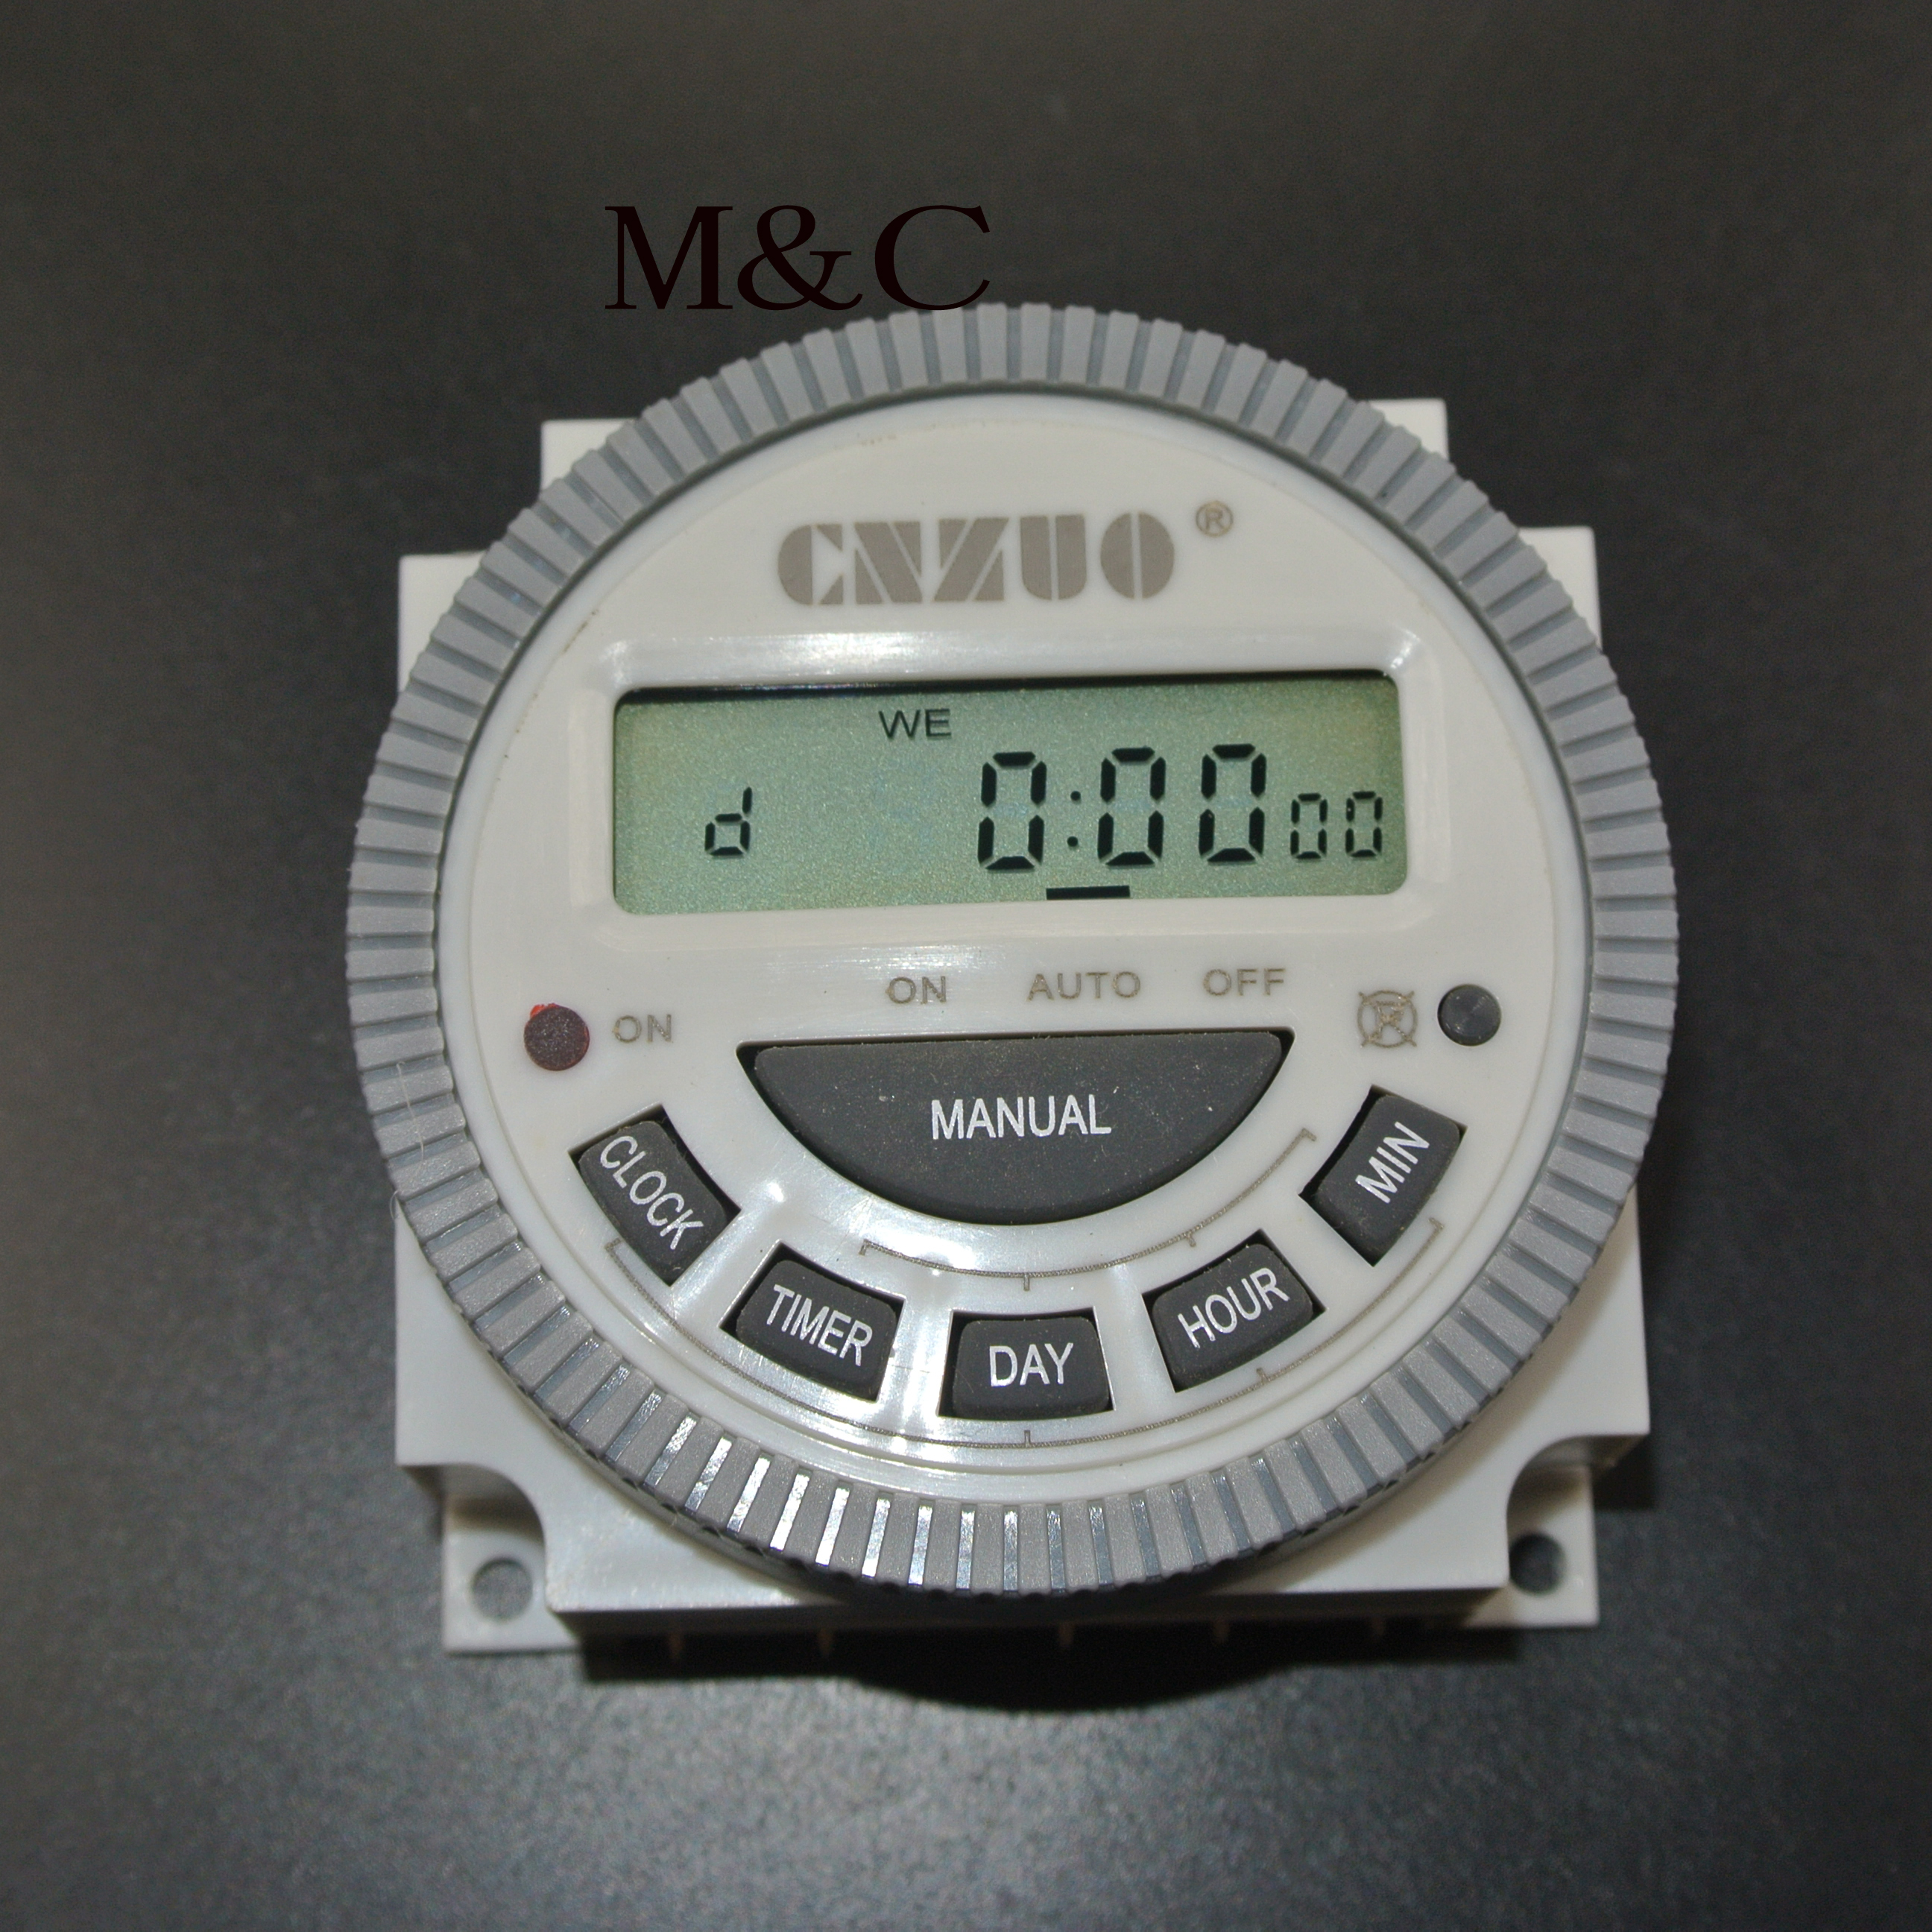 TM619 220VAC 110VAC 24VDC 12VVDC Digital Timer Switch with Waterproof Cover  output Easy Wiring 7 days Programmable Time Switch-in Relays from Home ...